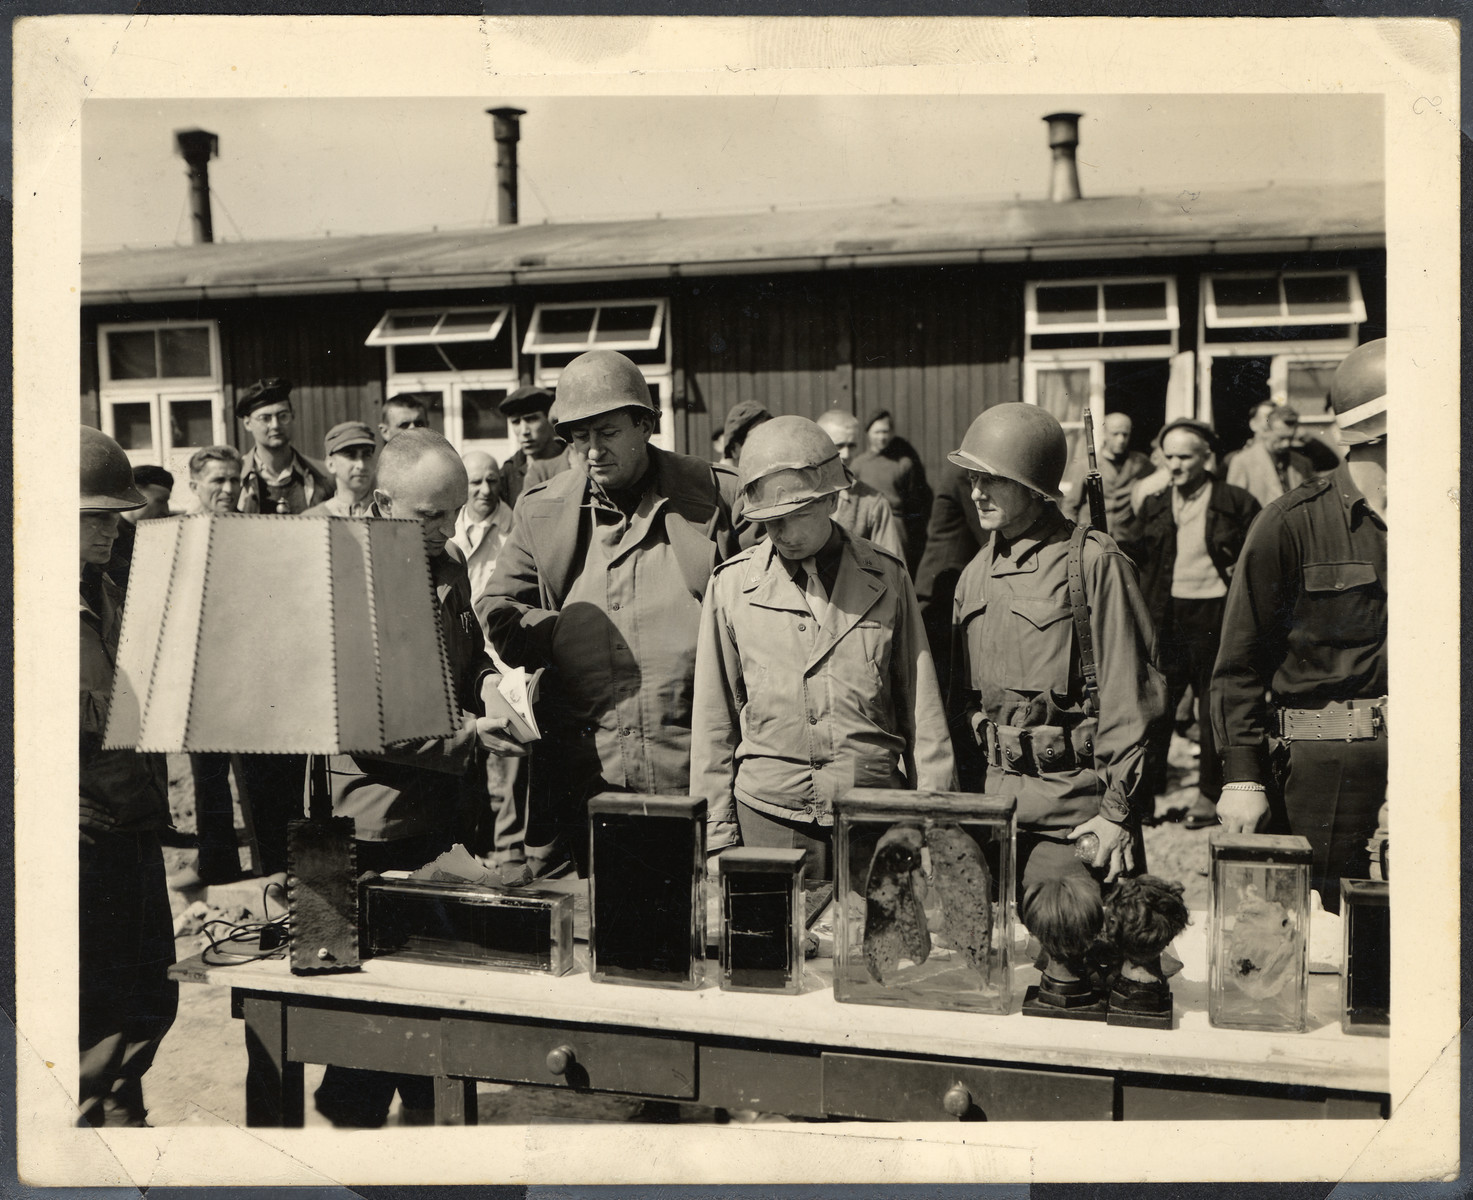 Members of General Patton's Third Army view articles made of prisoner remains as survivors watch. Seen here are lamp shades and book bindings allegedly made from human flesh, preserved human organs, and wigs.